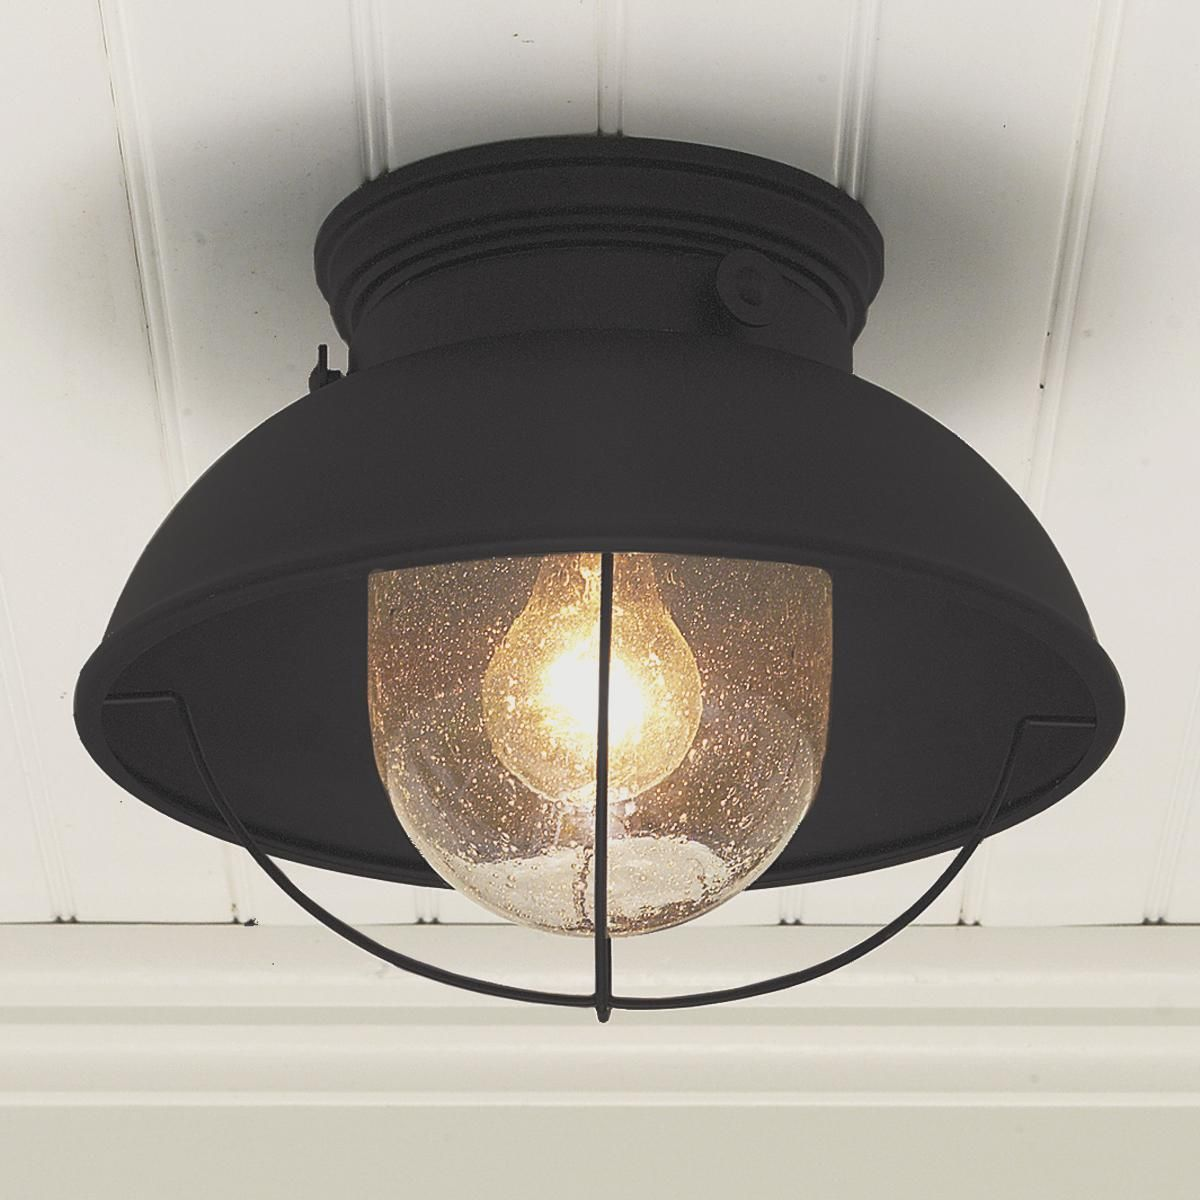 amazing kitchen light fixture canprovide additional accents. Nantucket Ceiling Light - Modern Outdoor Lighting Shades Of Light. AWESOME For Porch! Amazing Kitchen Fixture Canprovide Additional Accents